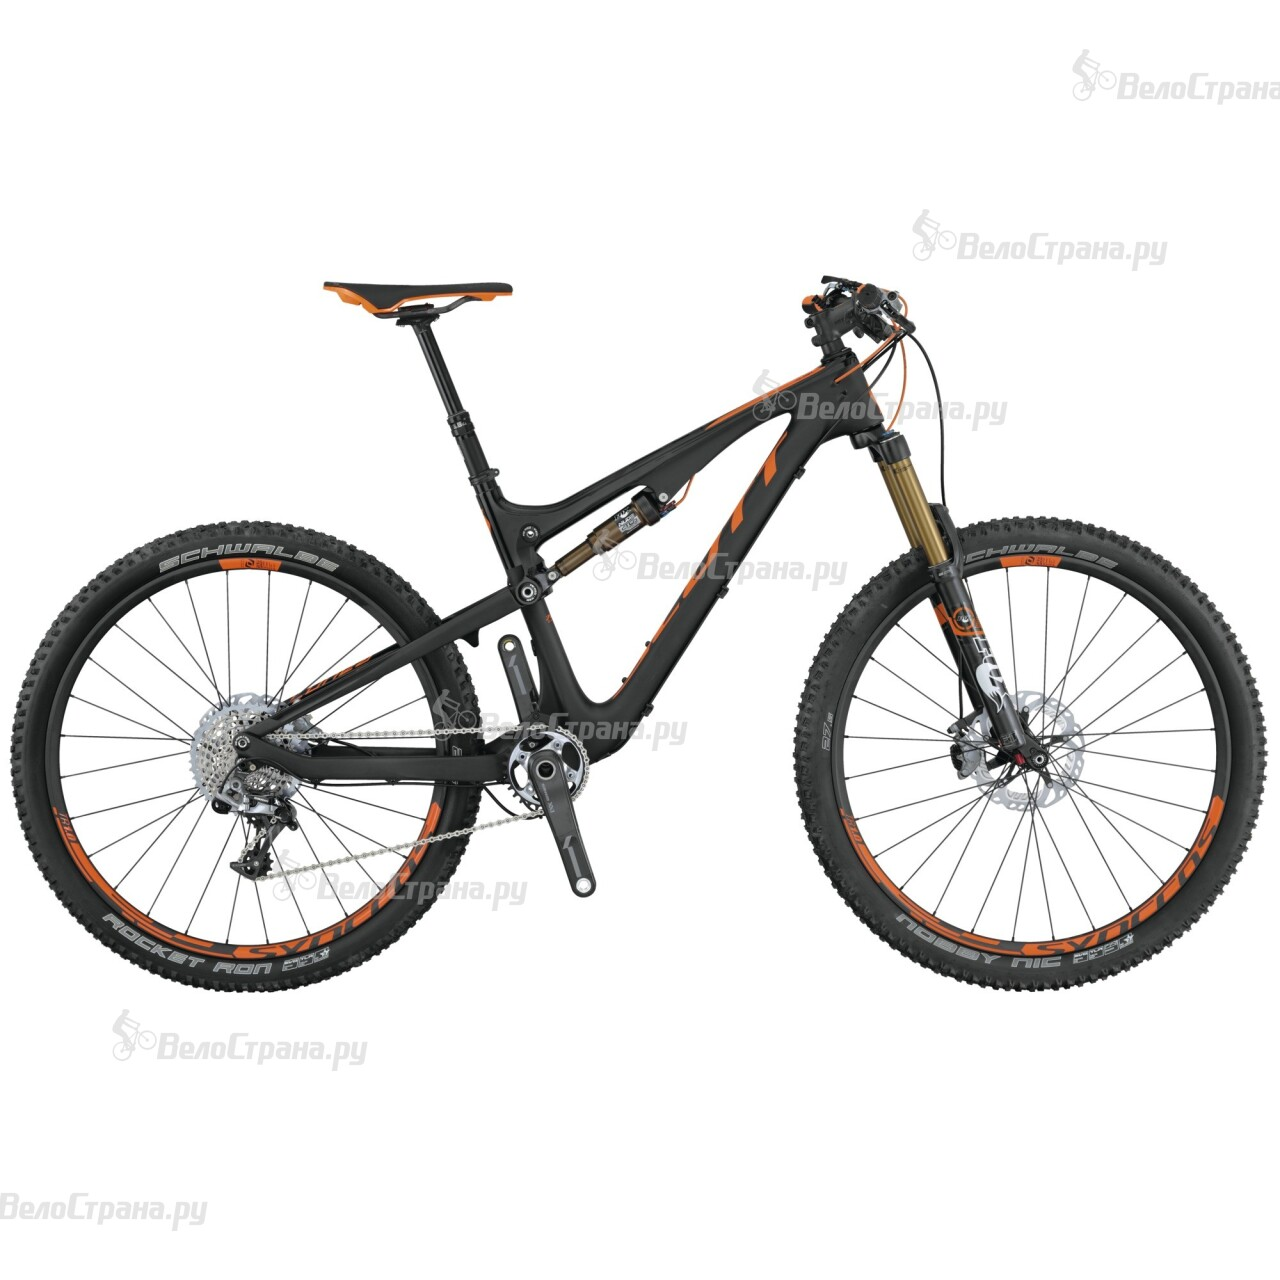 Велосипед Scott Genius 700 Tuned (2015)